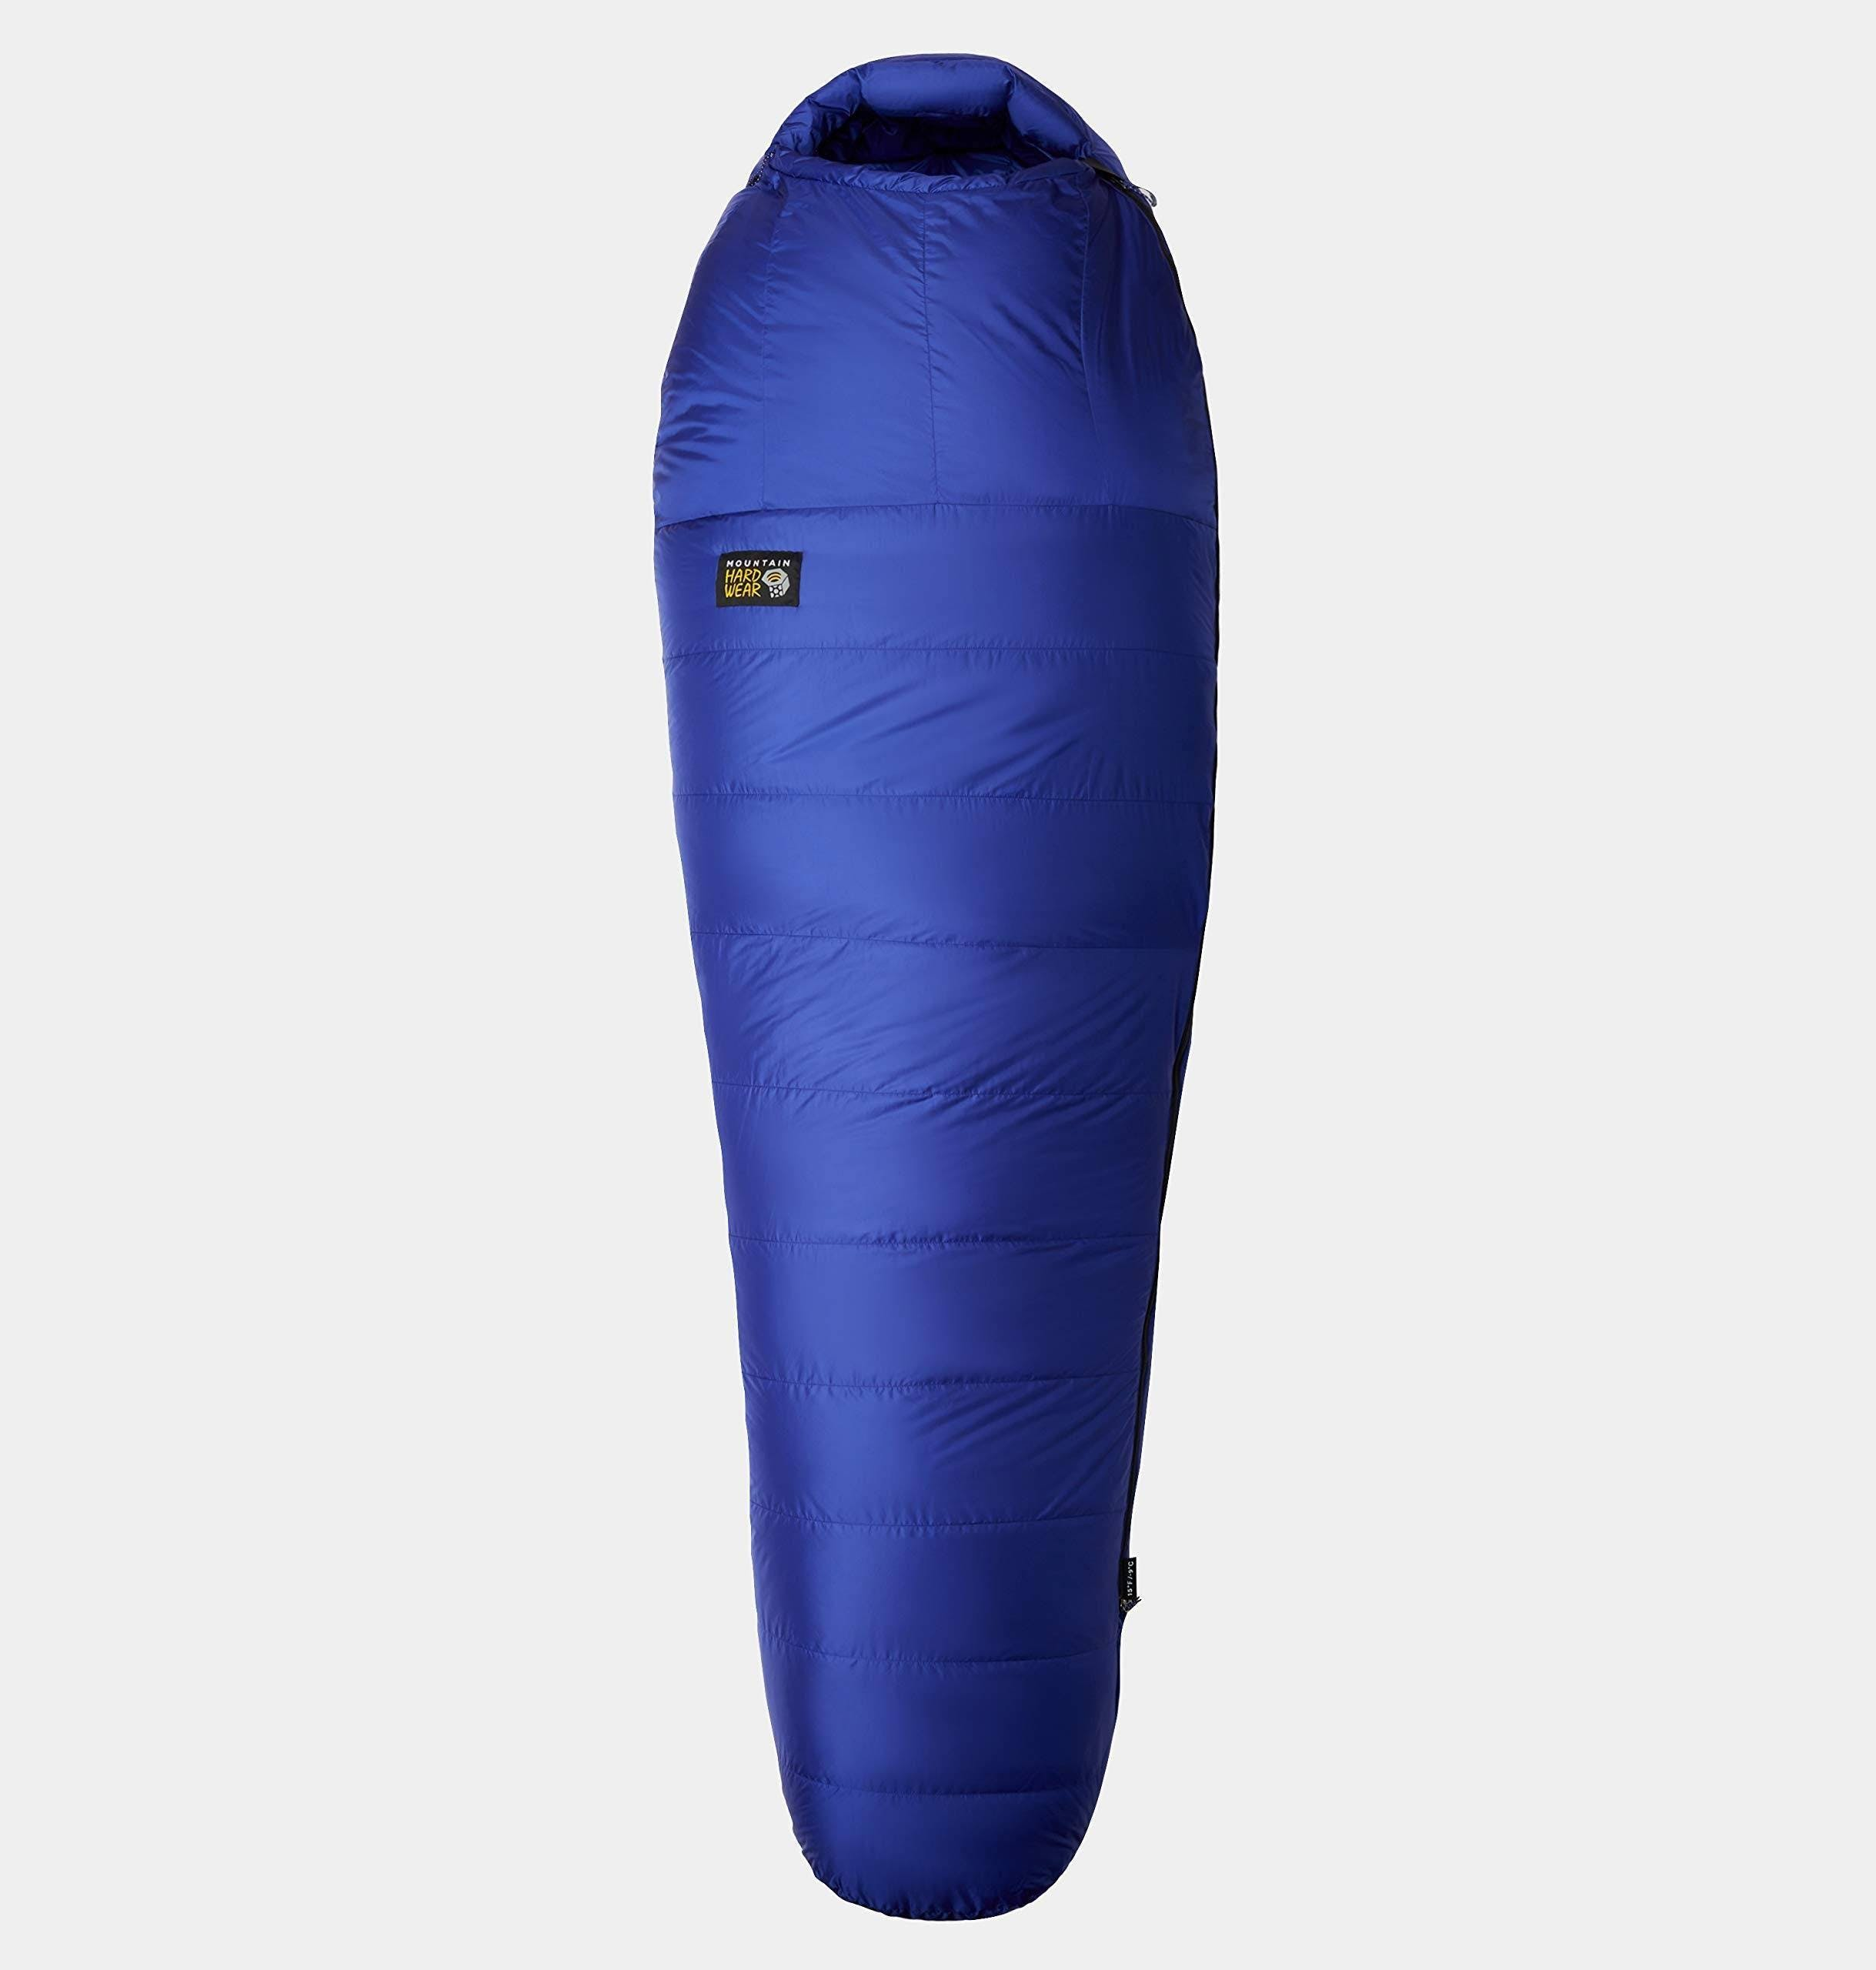 Mountain Hardwear Rook 15F/-9C Sleeping Bag Blue